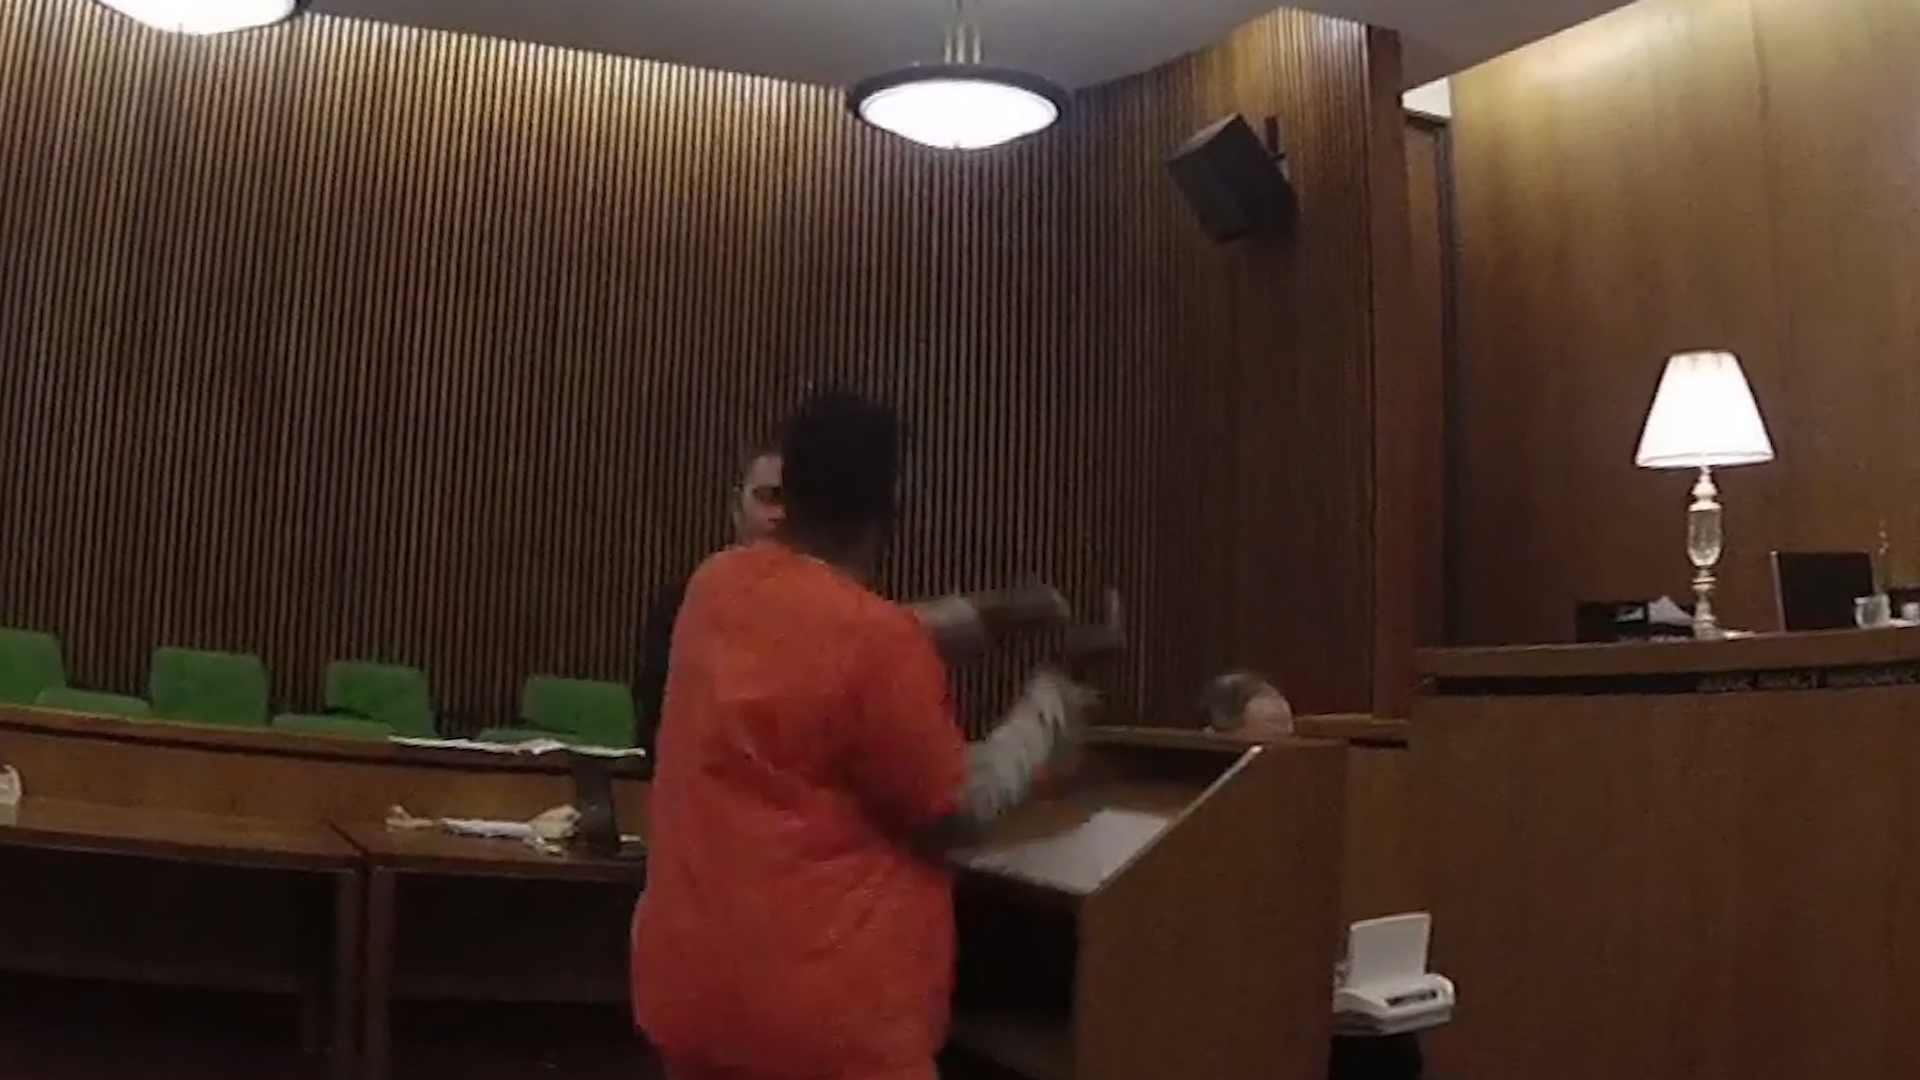 'He let it out on me': Man punches attorney after getting 47 years in prison